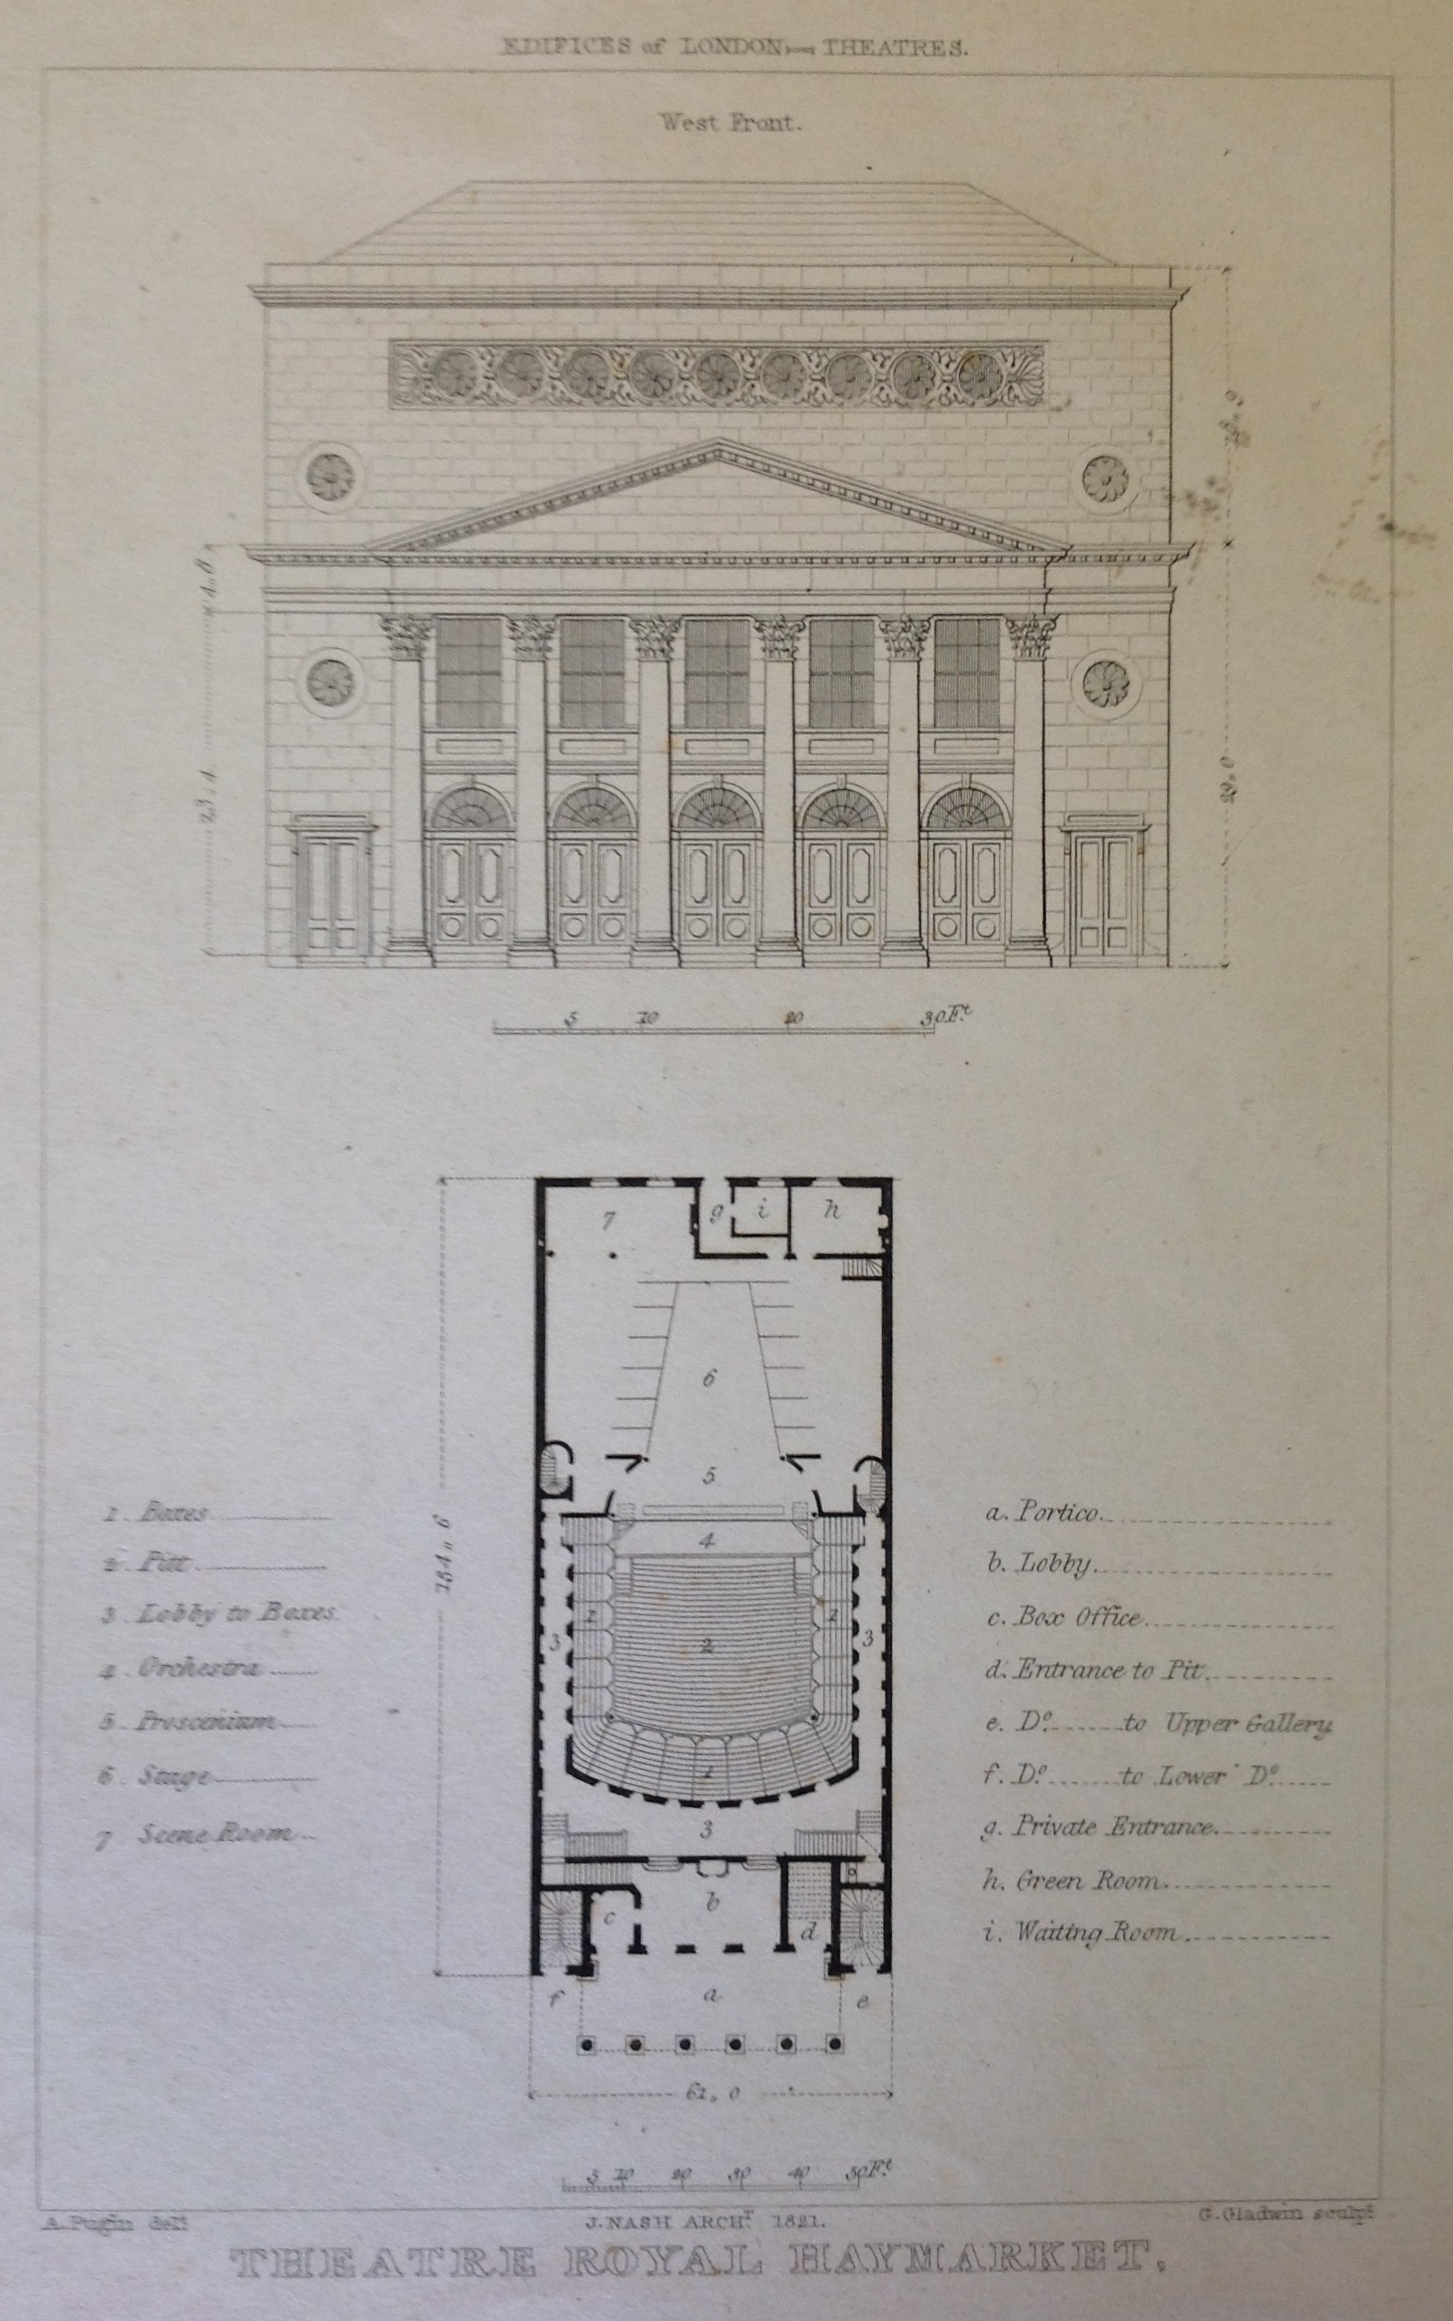 <b>Theatre Royal, Haymarket</b>     	</br>Exterior and floor plan of the Theatre Royal, Haymarket, London, 1821.</br><br/><b>Source: </b><i>Used with permission from the University of Bristol Theatre Collection.</i>